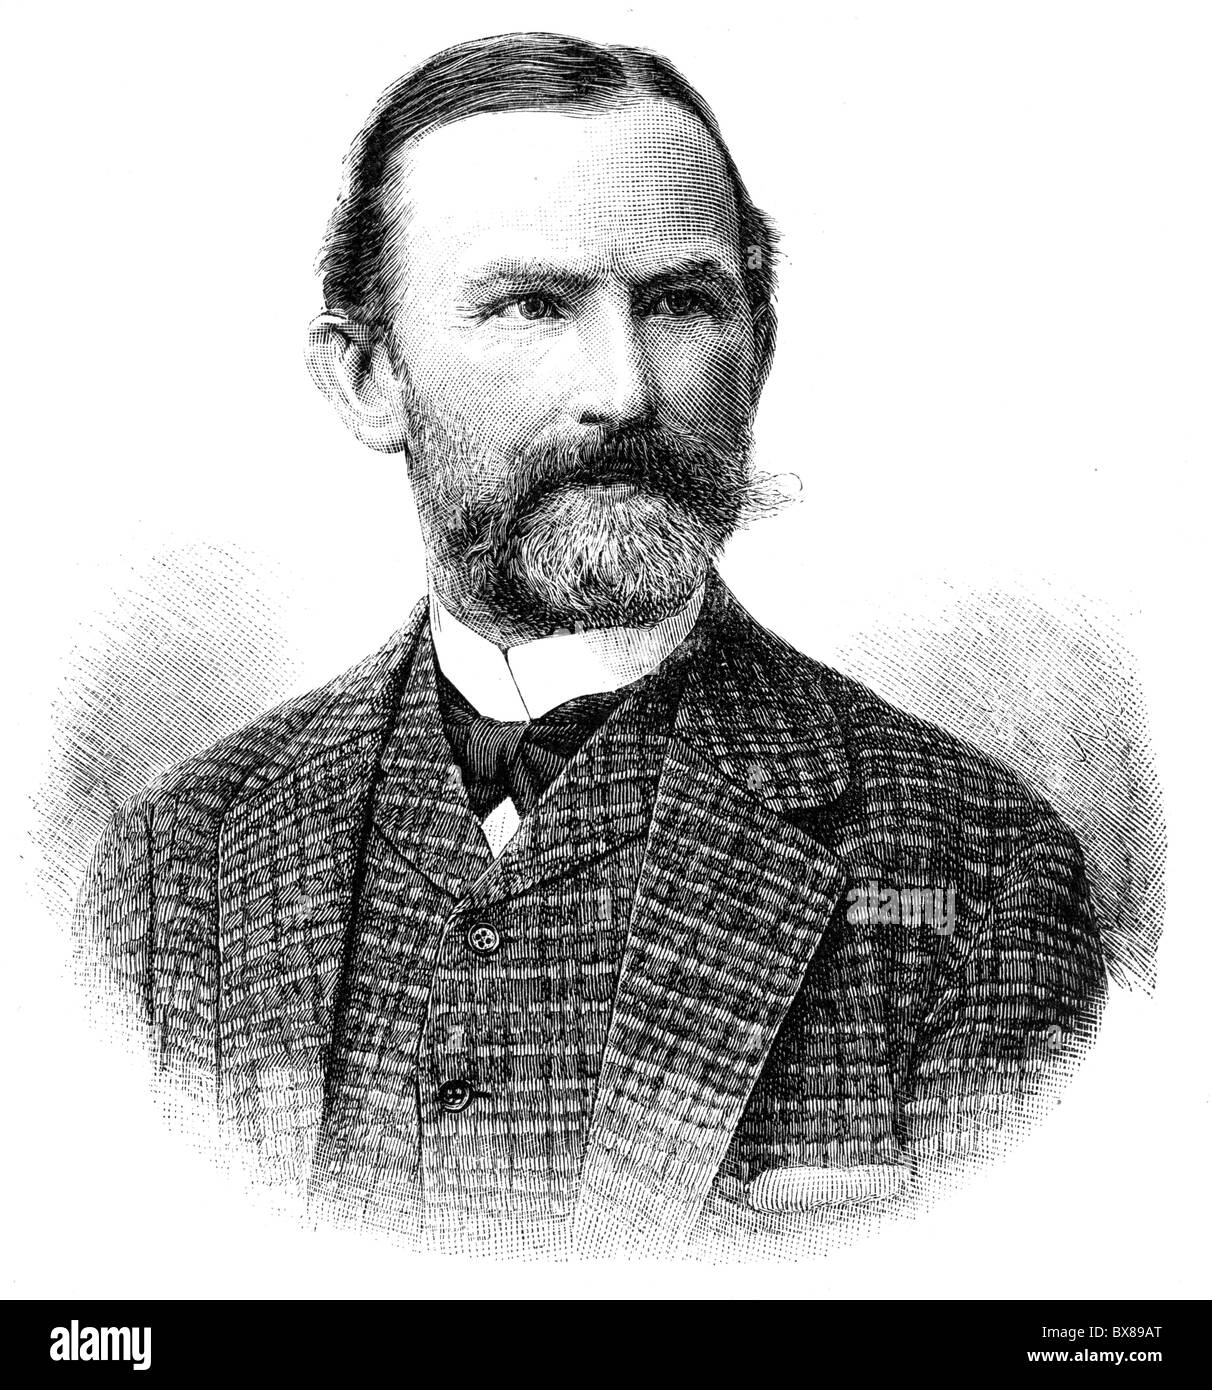 Bokelmann, Christian Ludwig, 1844 - 15.4.1894, German painter, portrait, wood engraving, after a photo by Wilhelm Stock Photo